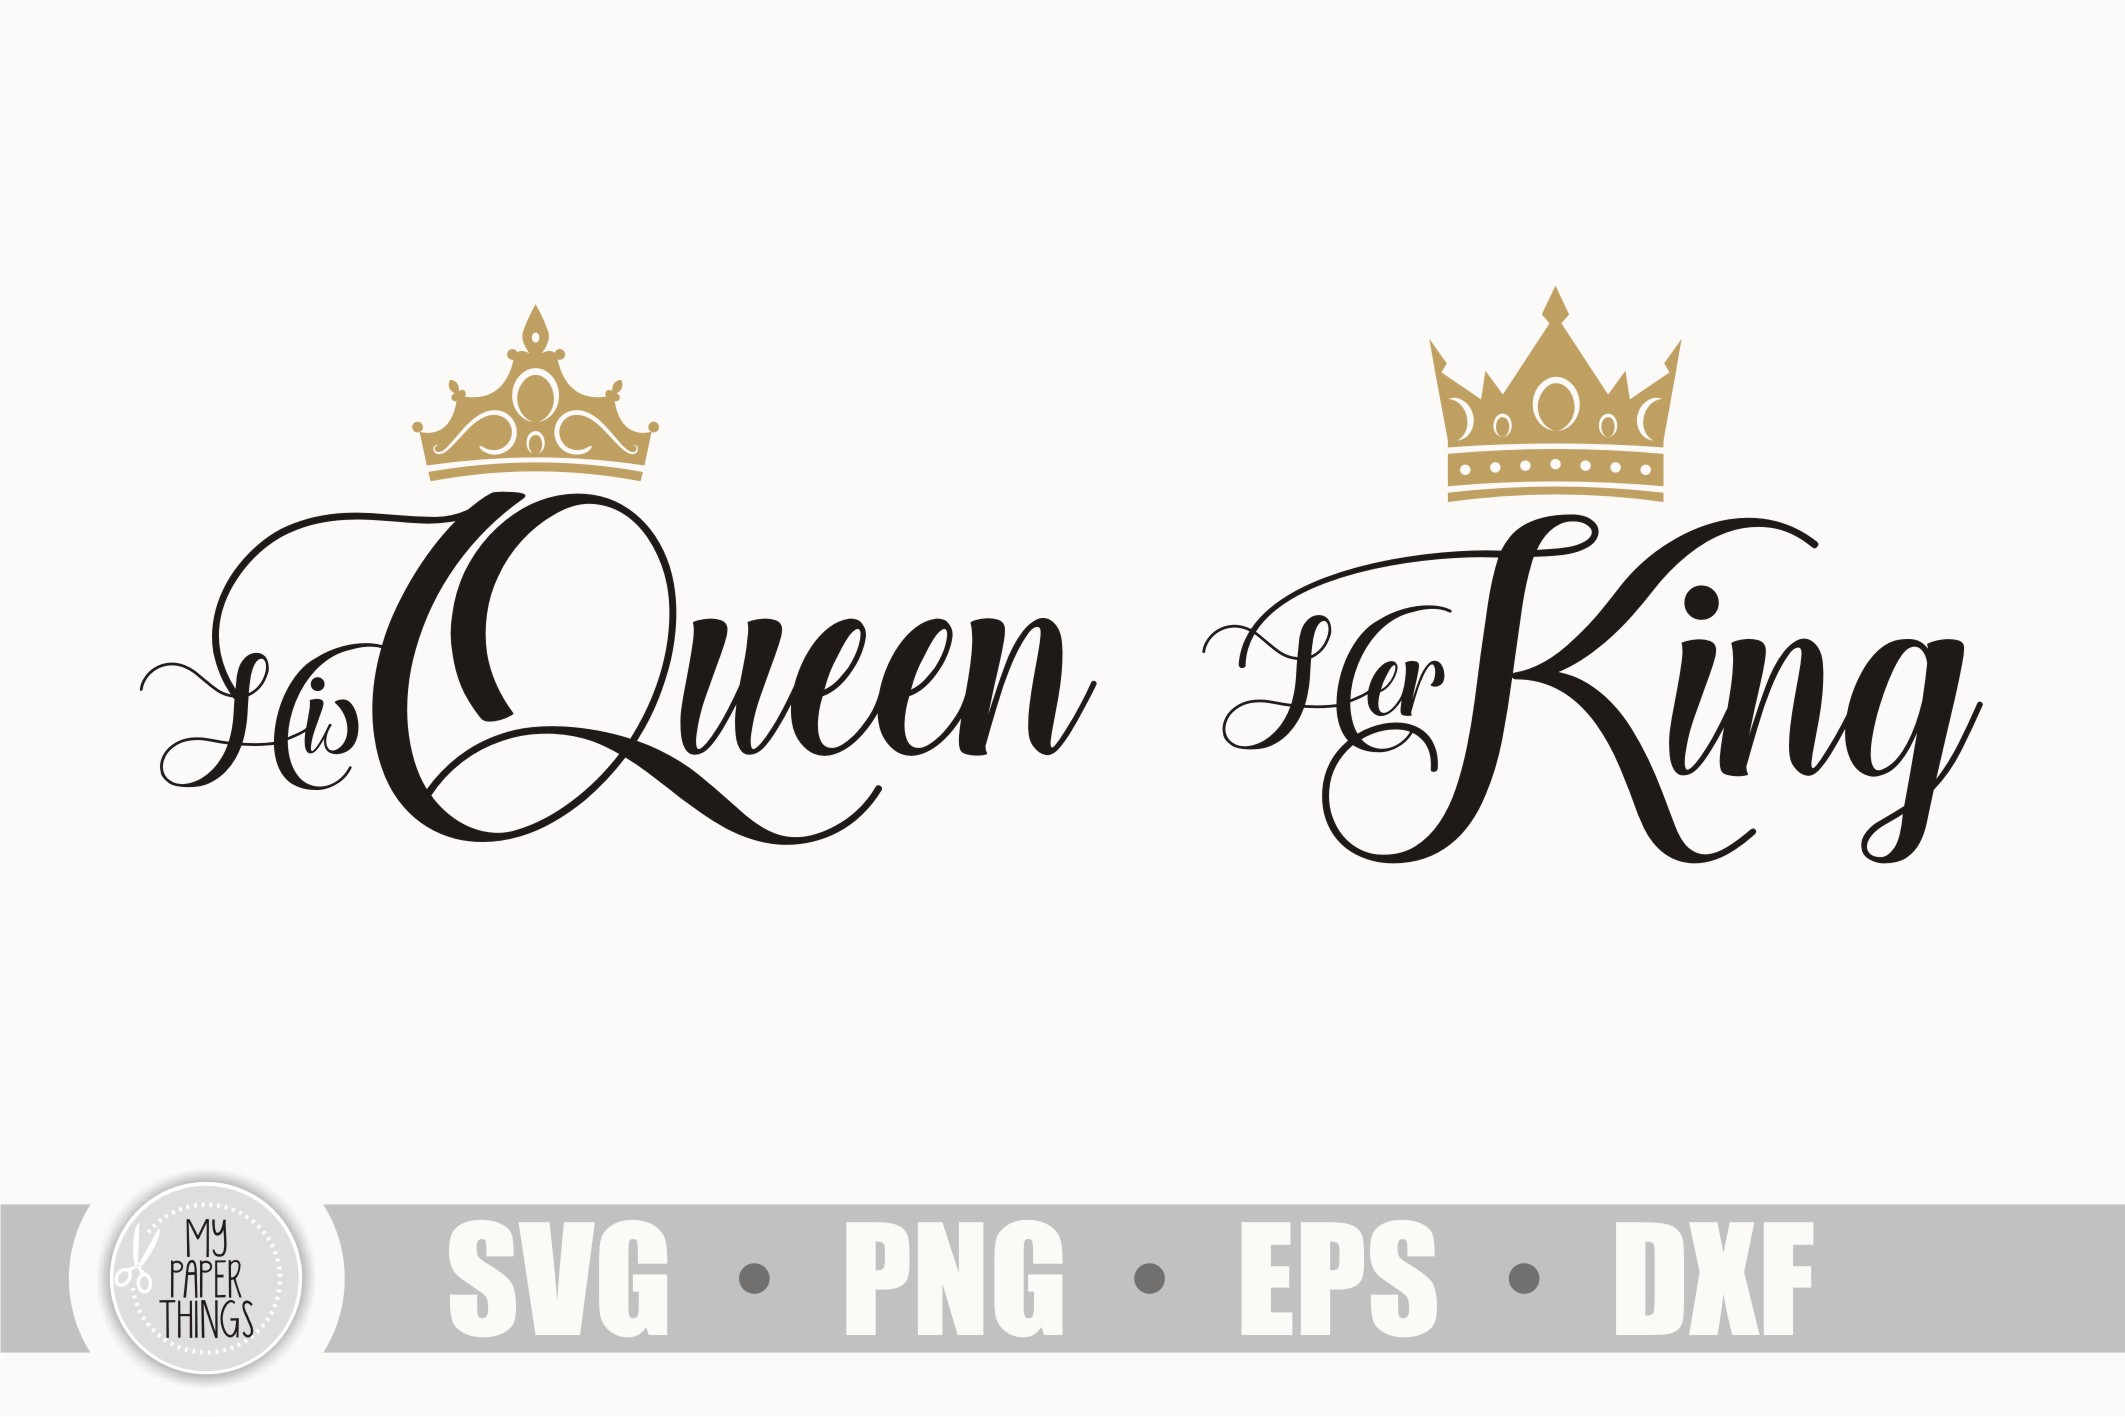 His Queen her King svg, couple shirt example image 1